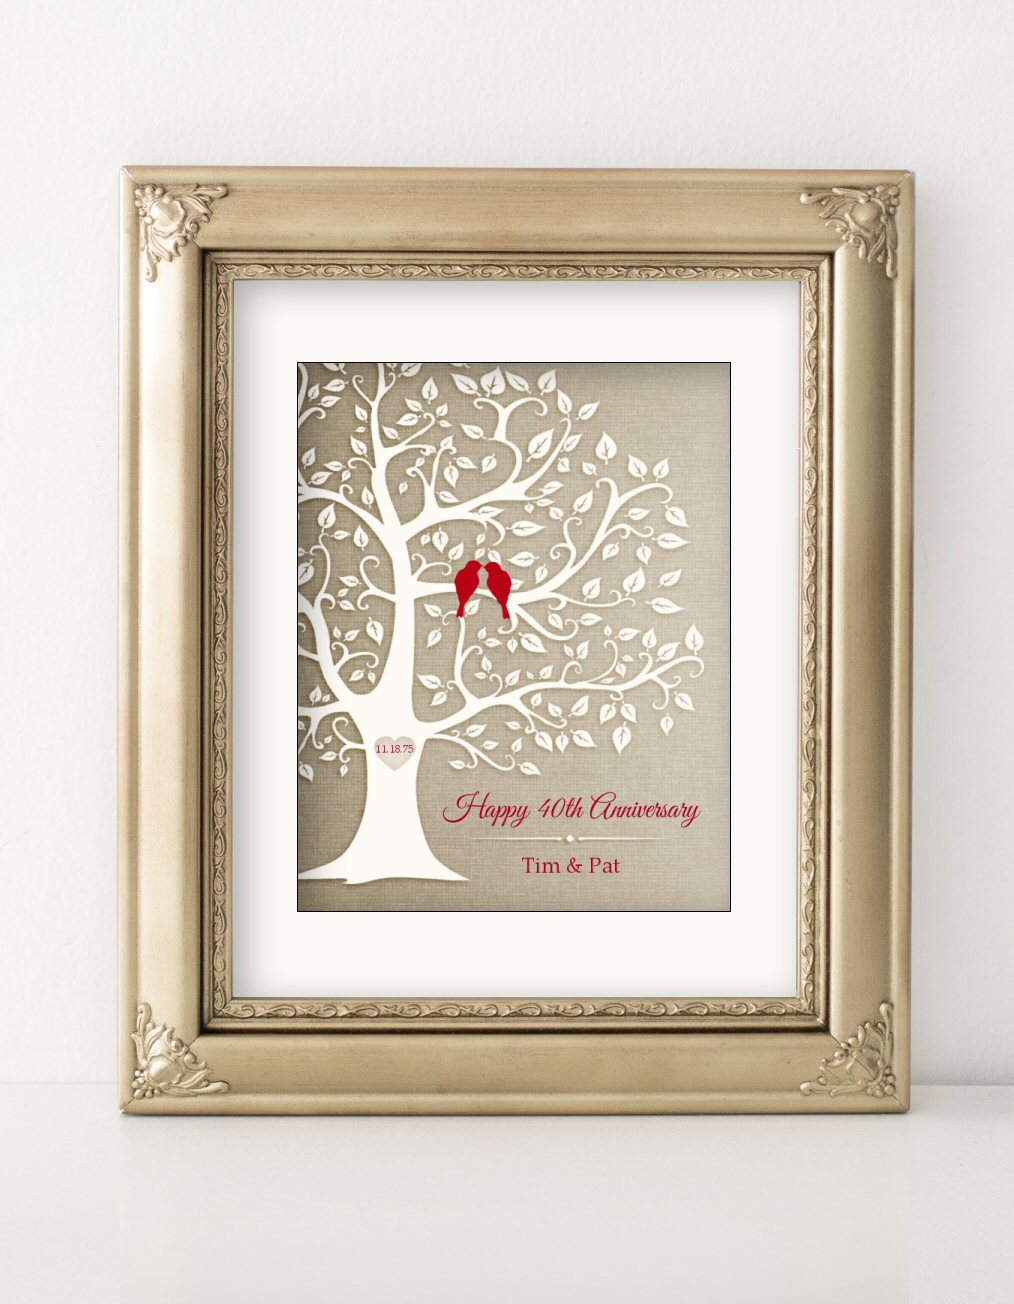 Best ideas about 40Th Year Anniversary Gift Ideas . Save or Pin 40th Anniversary Gift Golden Anniversary Print Gift Now.